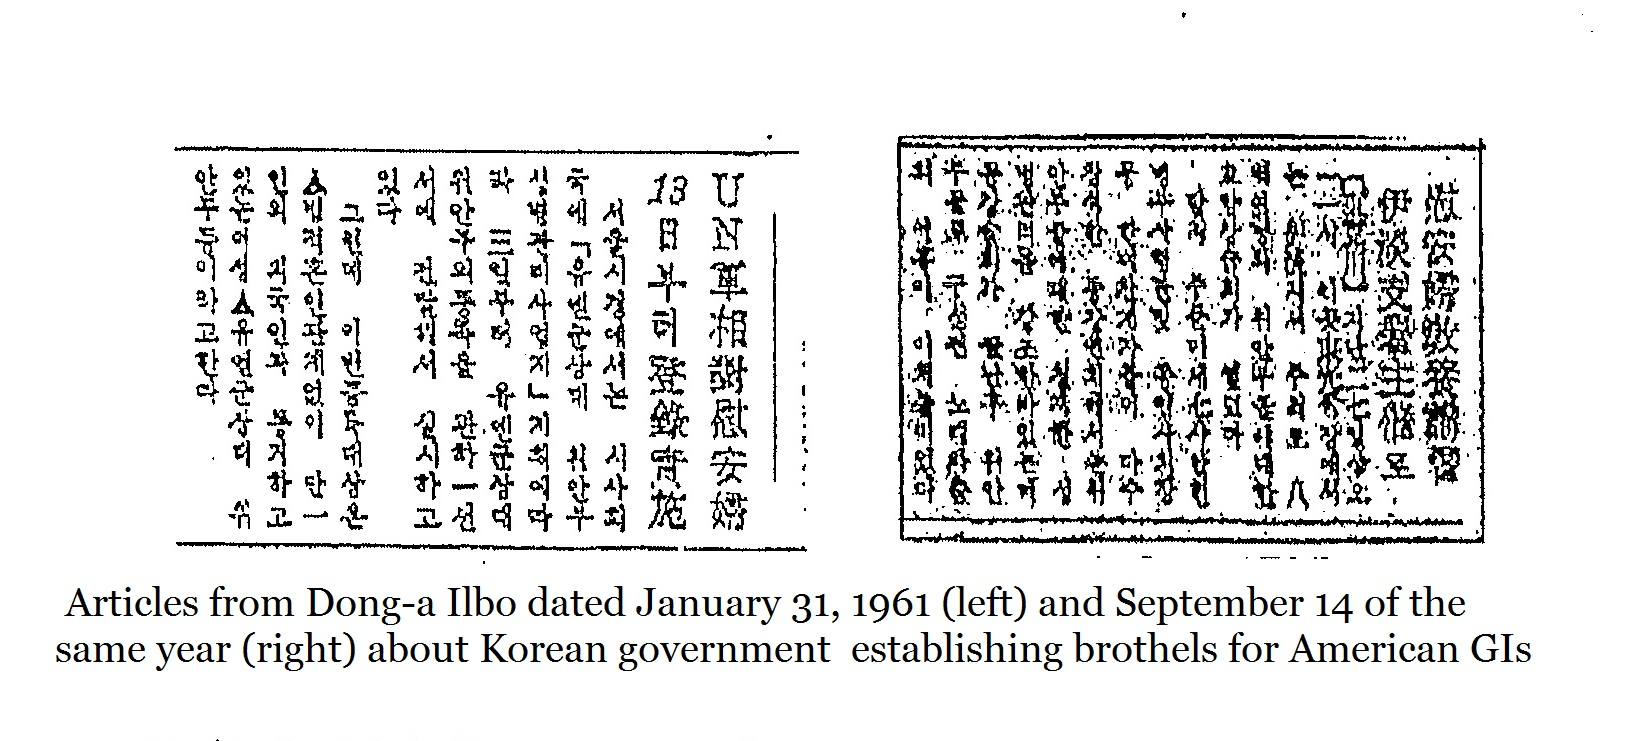 Articles from Dong-a Ilbo dated January 31, 1961 (left) and September 14 of the same year (right)   about Korean government establishing brothels for American GIs